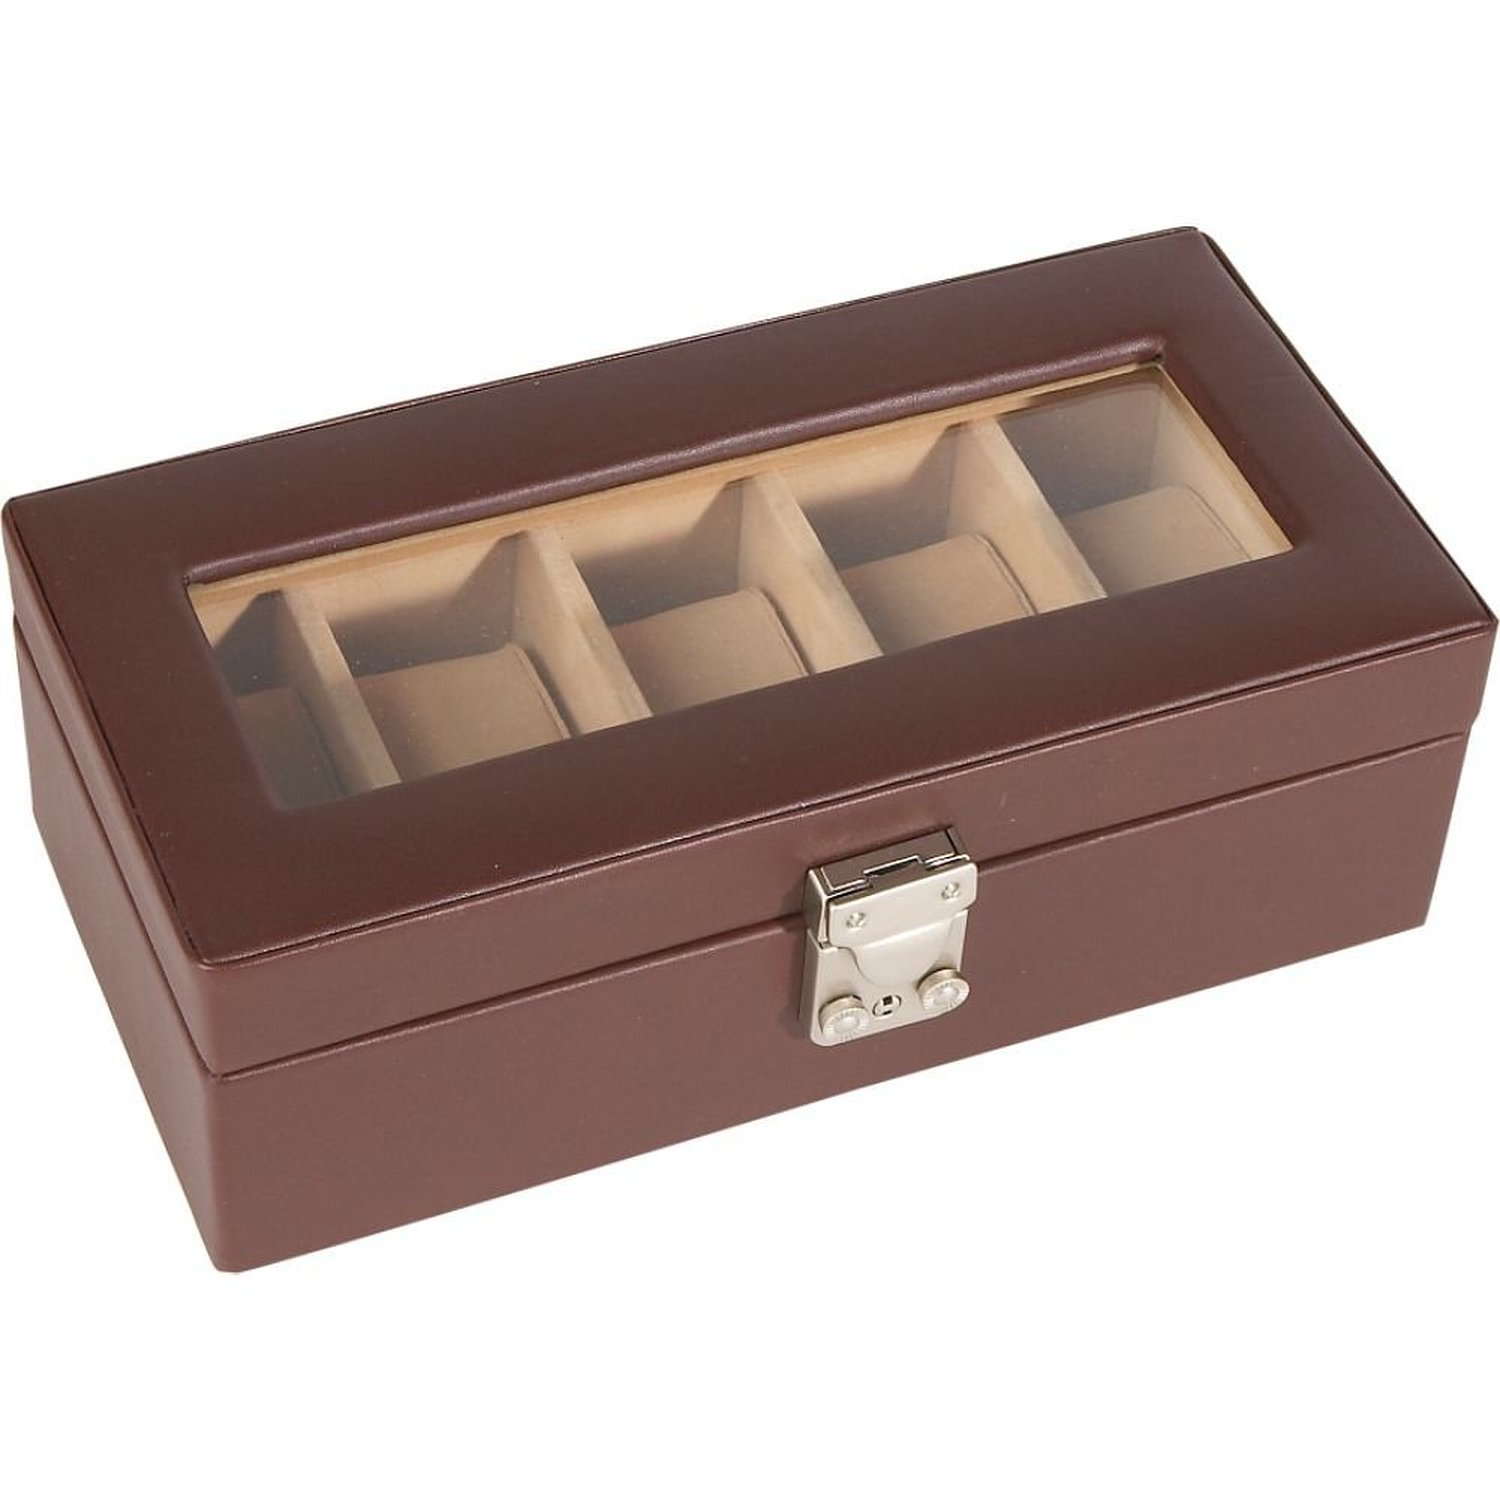 Deluxe 5 Watch Box (Coco) (9.5''H x 3.5''W x 4.75''D)